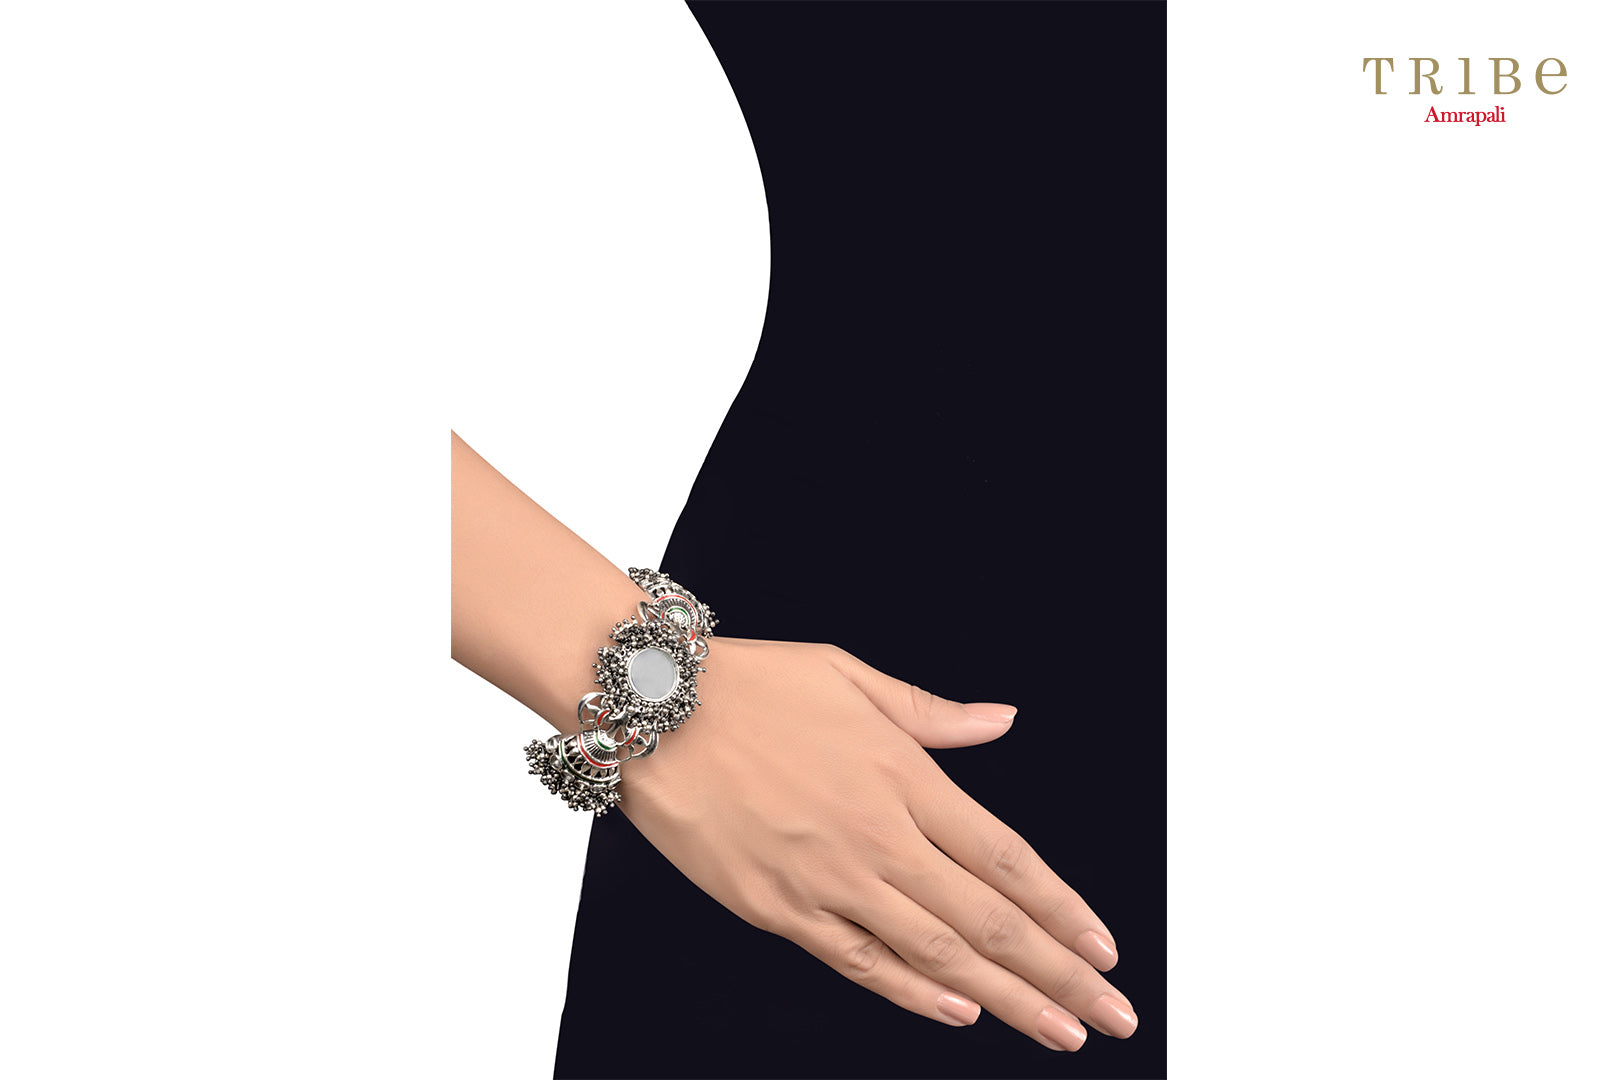 Buy Amrapali fan motif mirror enameled silver bracelet online in USA. Add a sparkling touch to your ethnic look with beautiful Indian ethnic jewelry available at Pure Elegance exclusive Indian fashion store in USA or shop online.-hand view